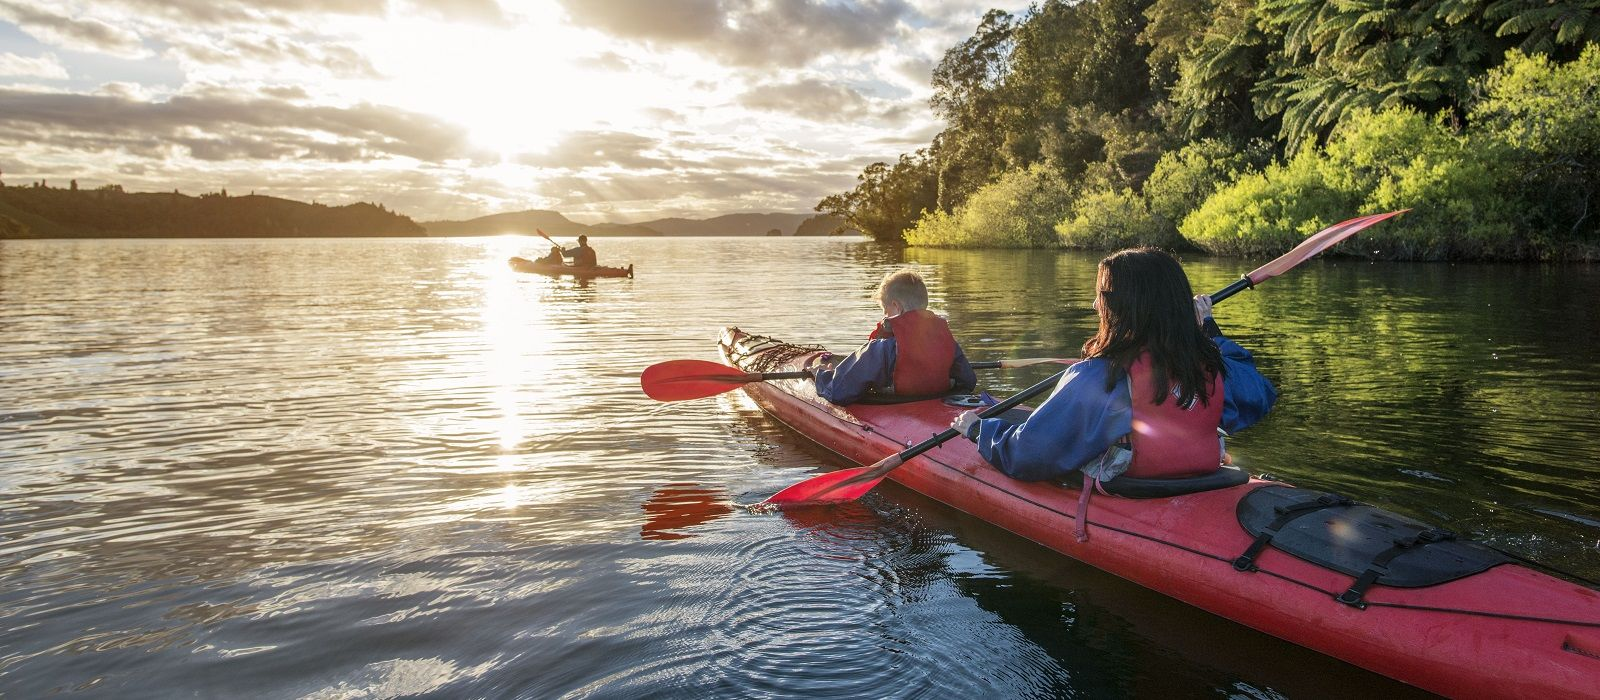 New Zealand Overland: From South to North Island Tour Trip 6